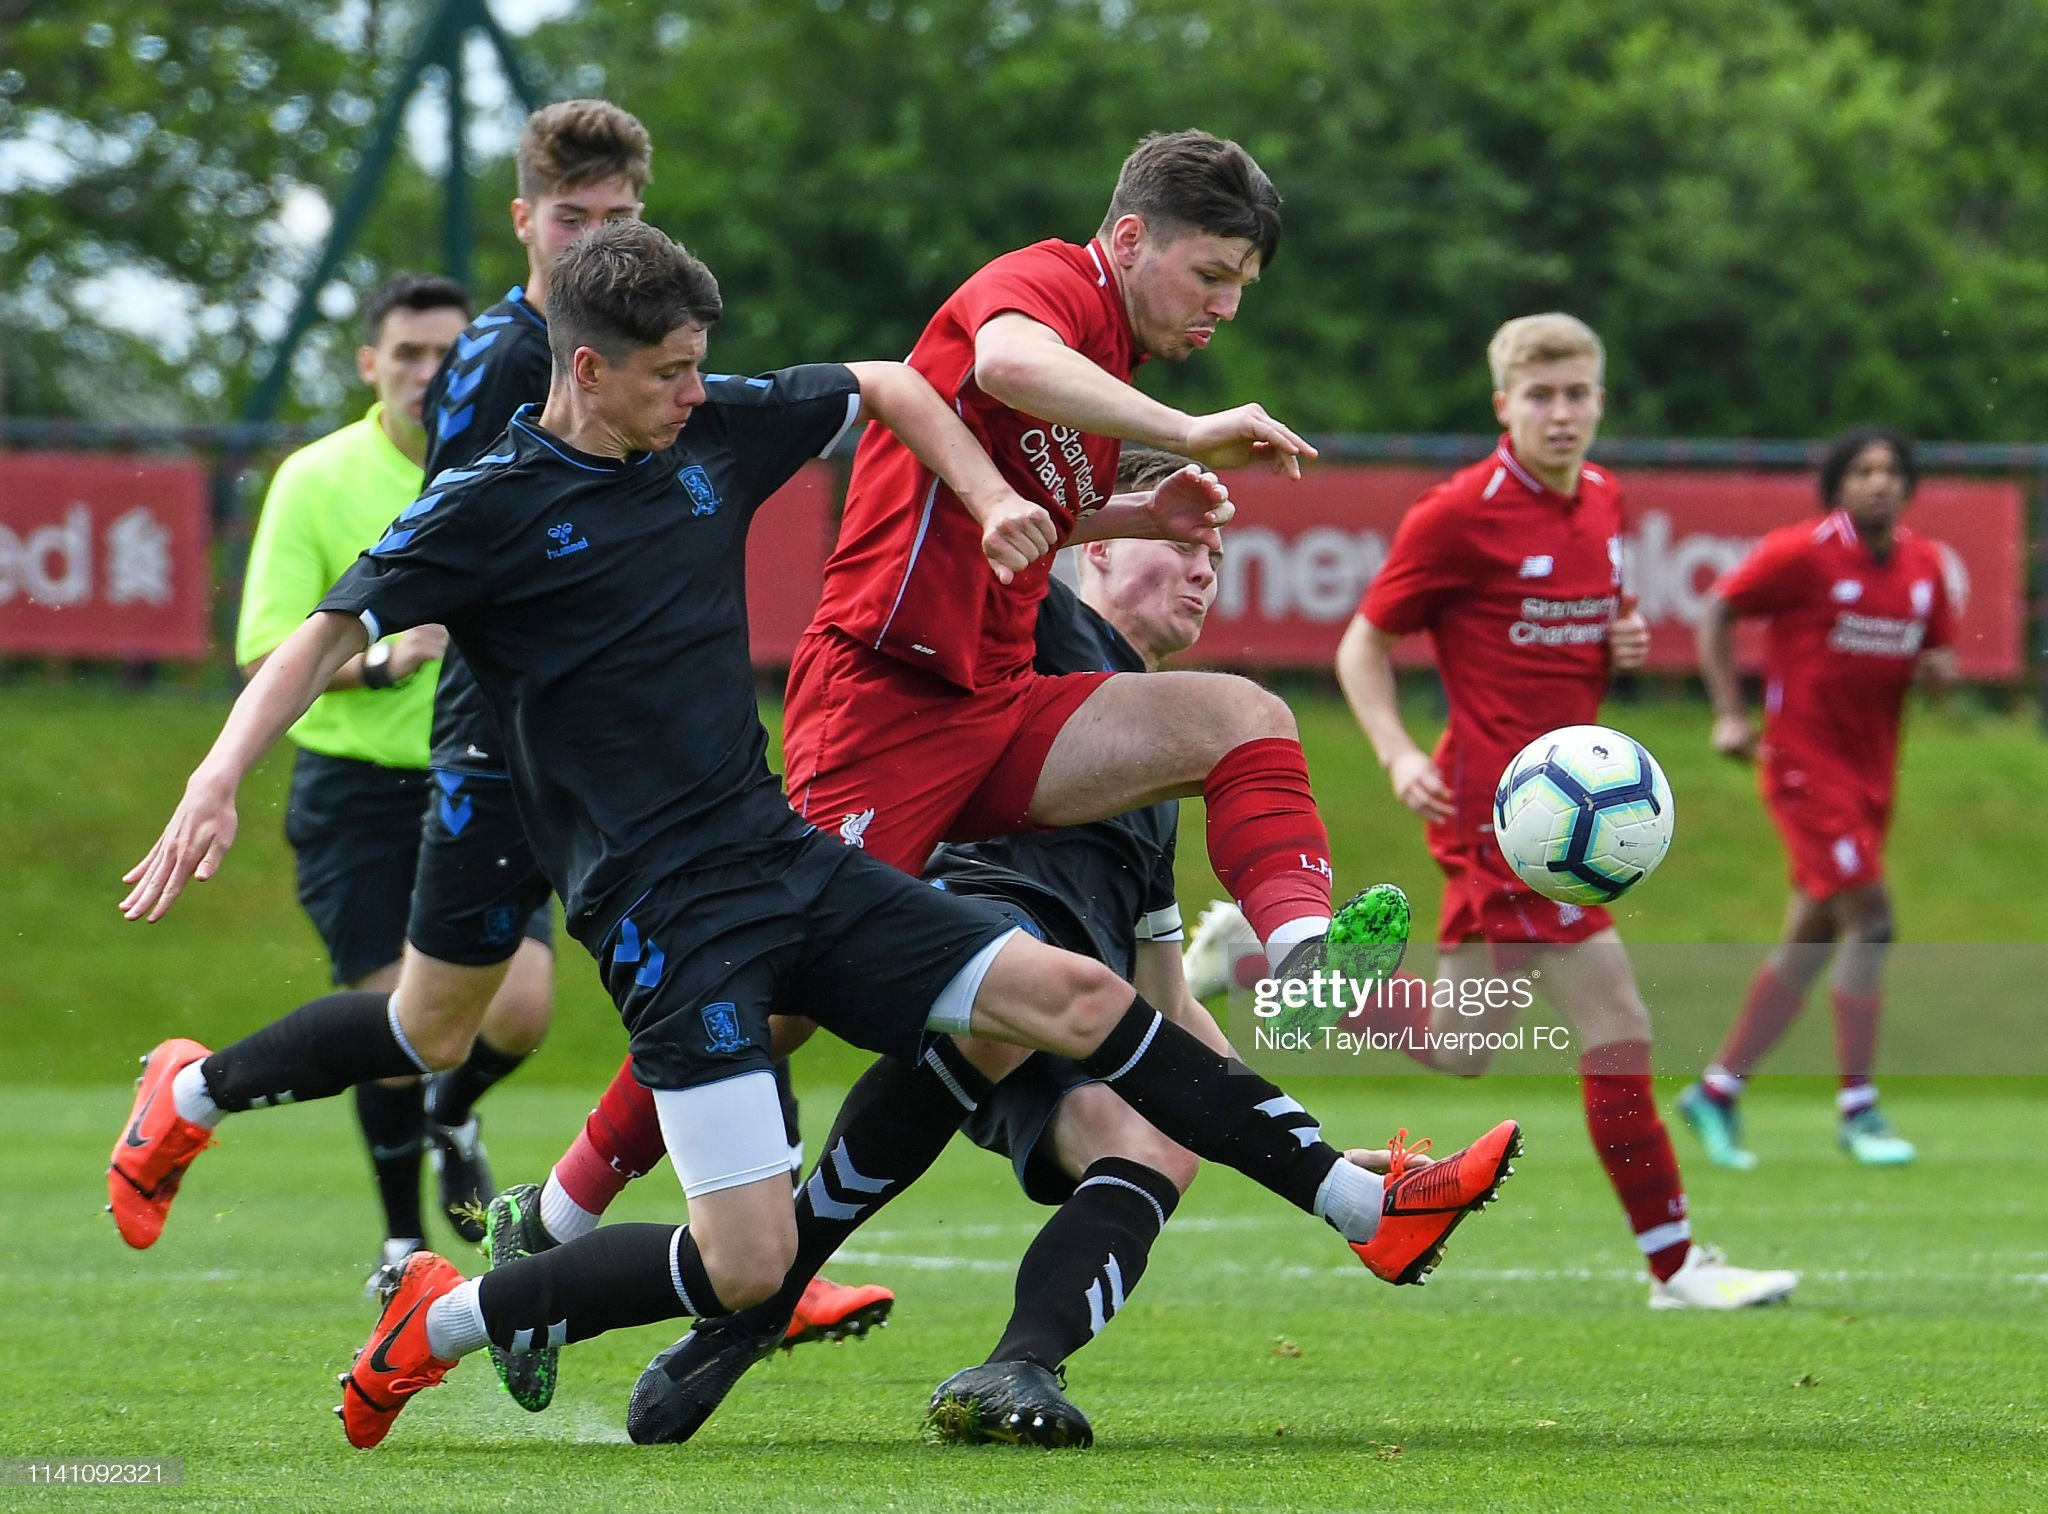 Liverpool v Middlesbrough - U18 Premier League : News Photo